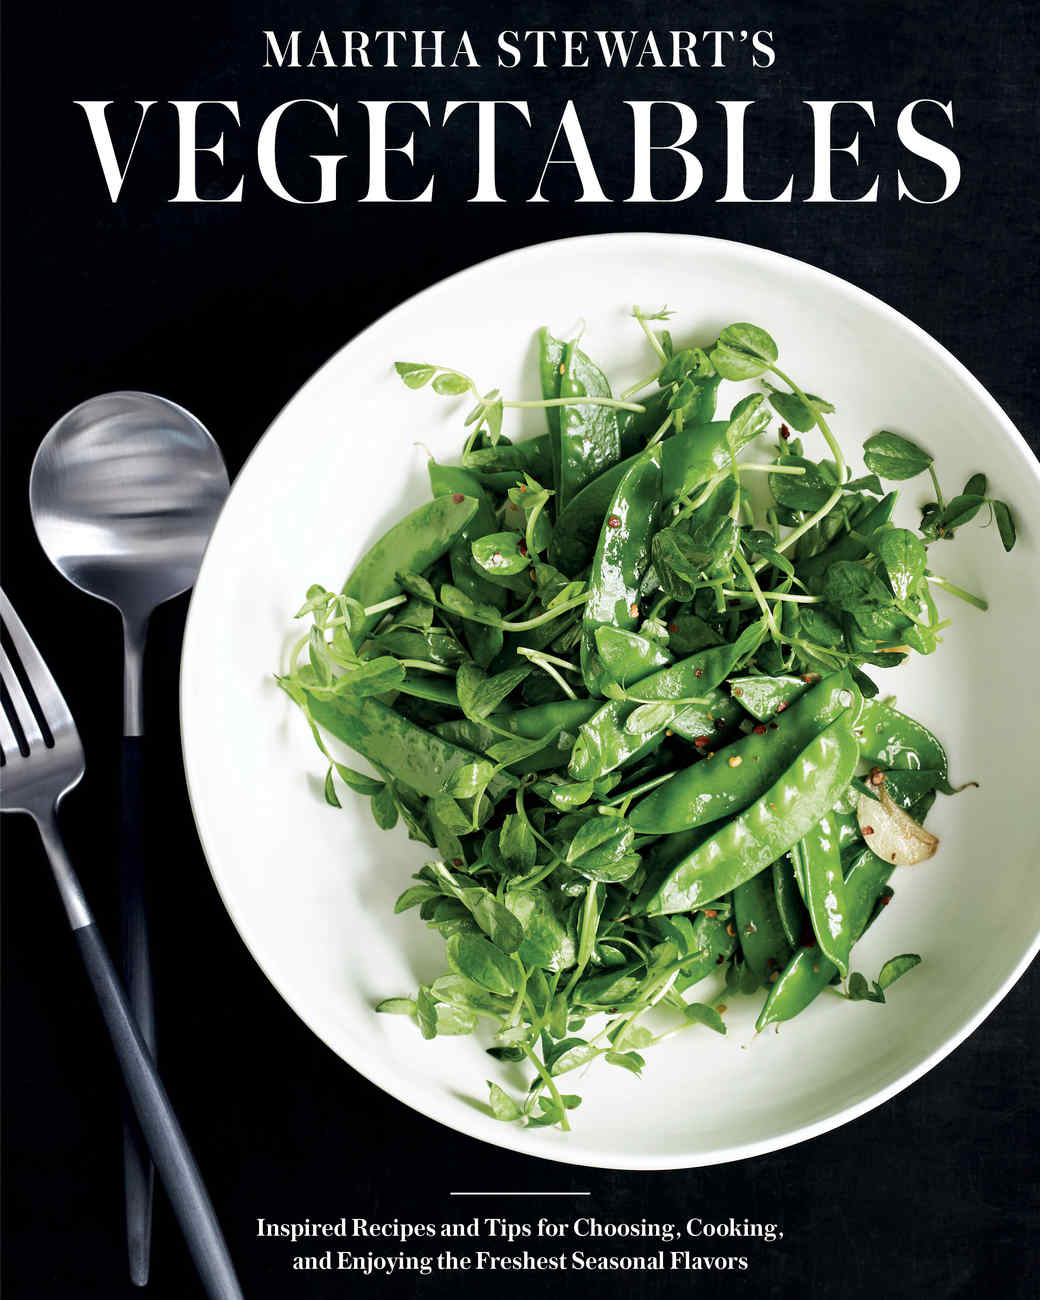 Trying to eat more veggies dont miss the sneak peek of our new trying to eat more veggies dont miss the sneak peek of our new cookbook martha stewarts vegetables martha stewart forumfinder